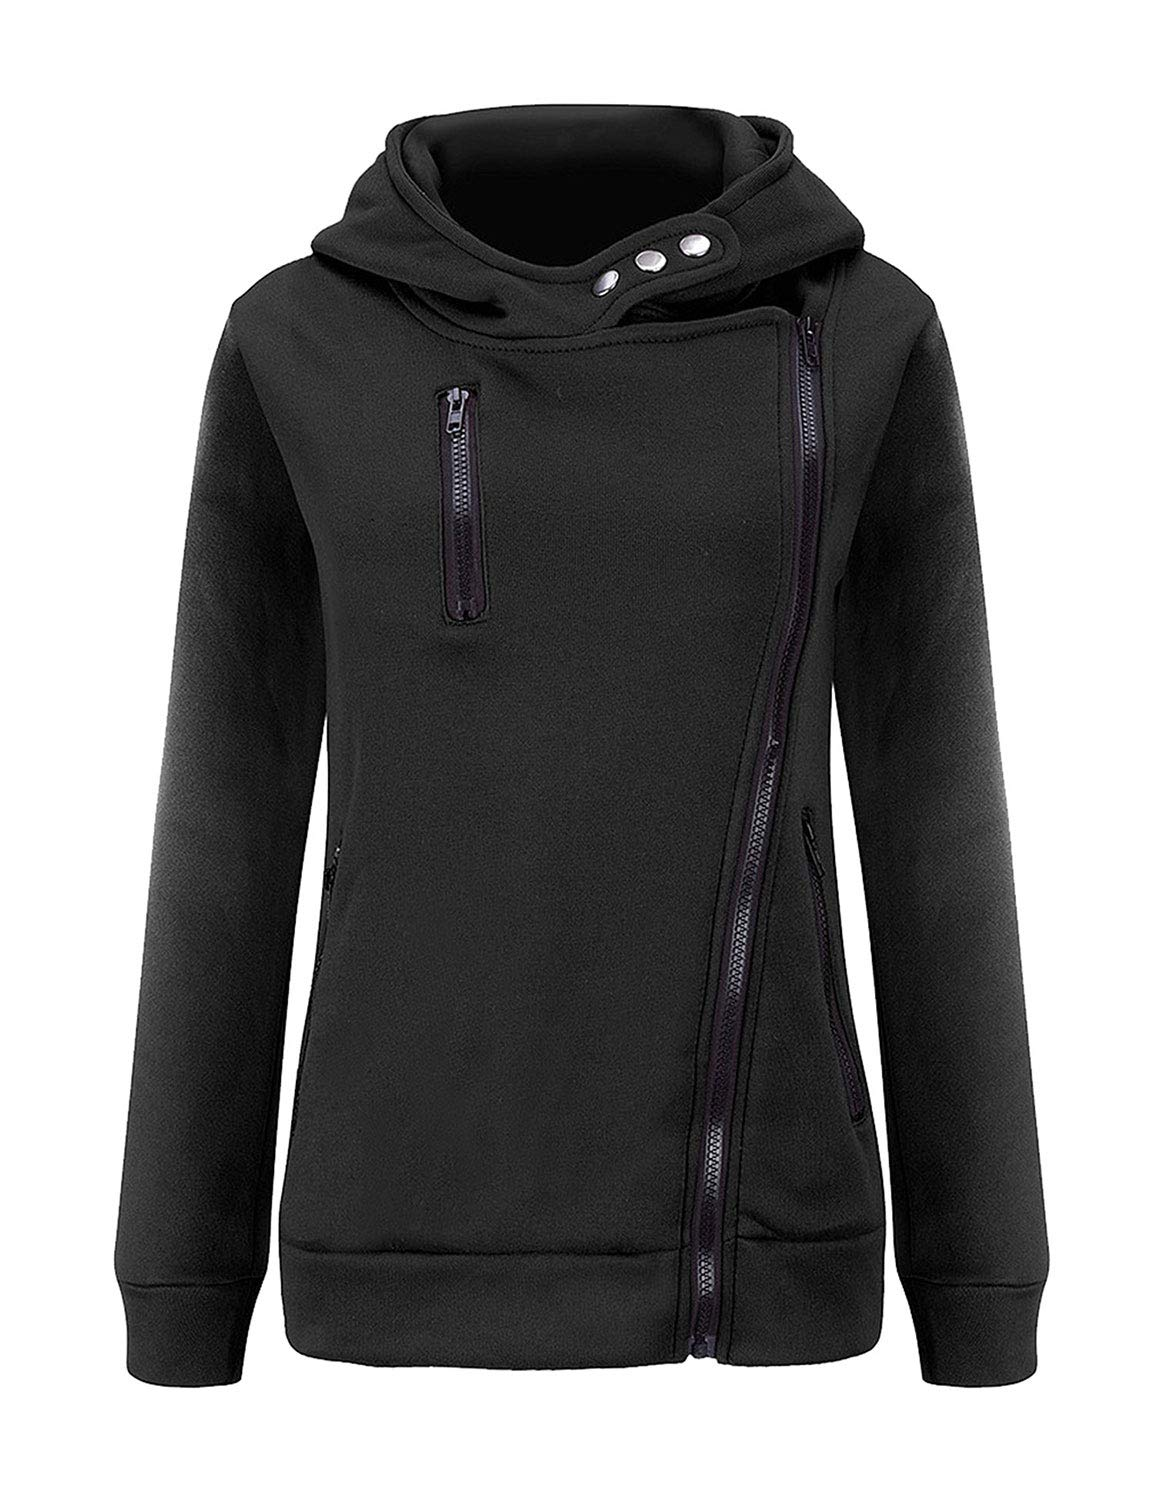 SCX Women Oblique Zipper Front Pocket Long Sleeves Solid Color Casual Pullover Tops Hoodie